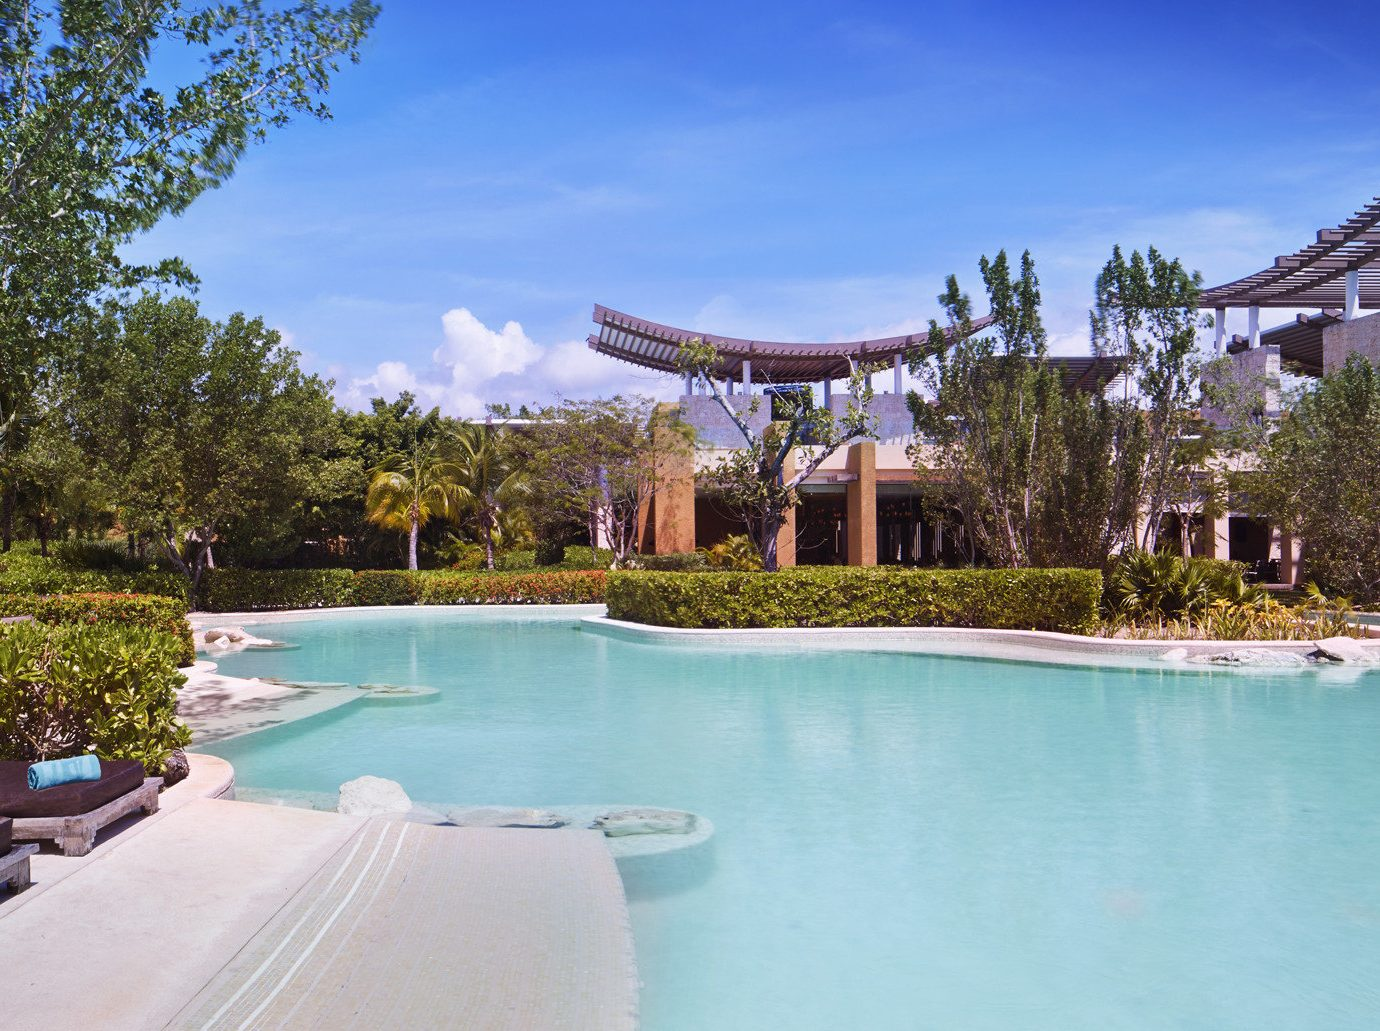 Hotels Romance tree outdoor sky swimming pool leisure property building Resort estate house vacation Villa resort town mansion backyard real estate